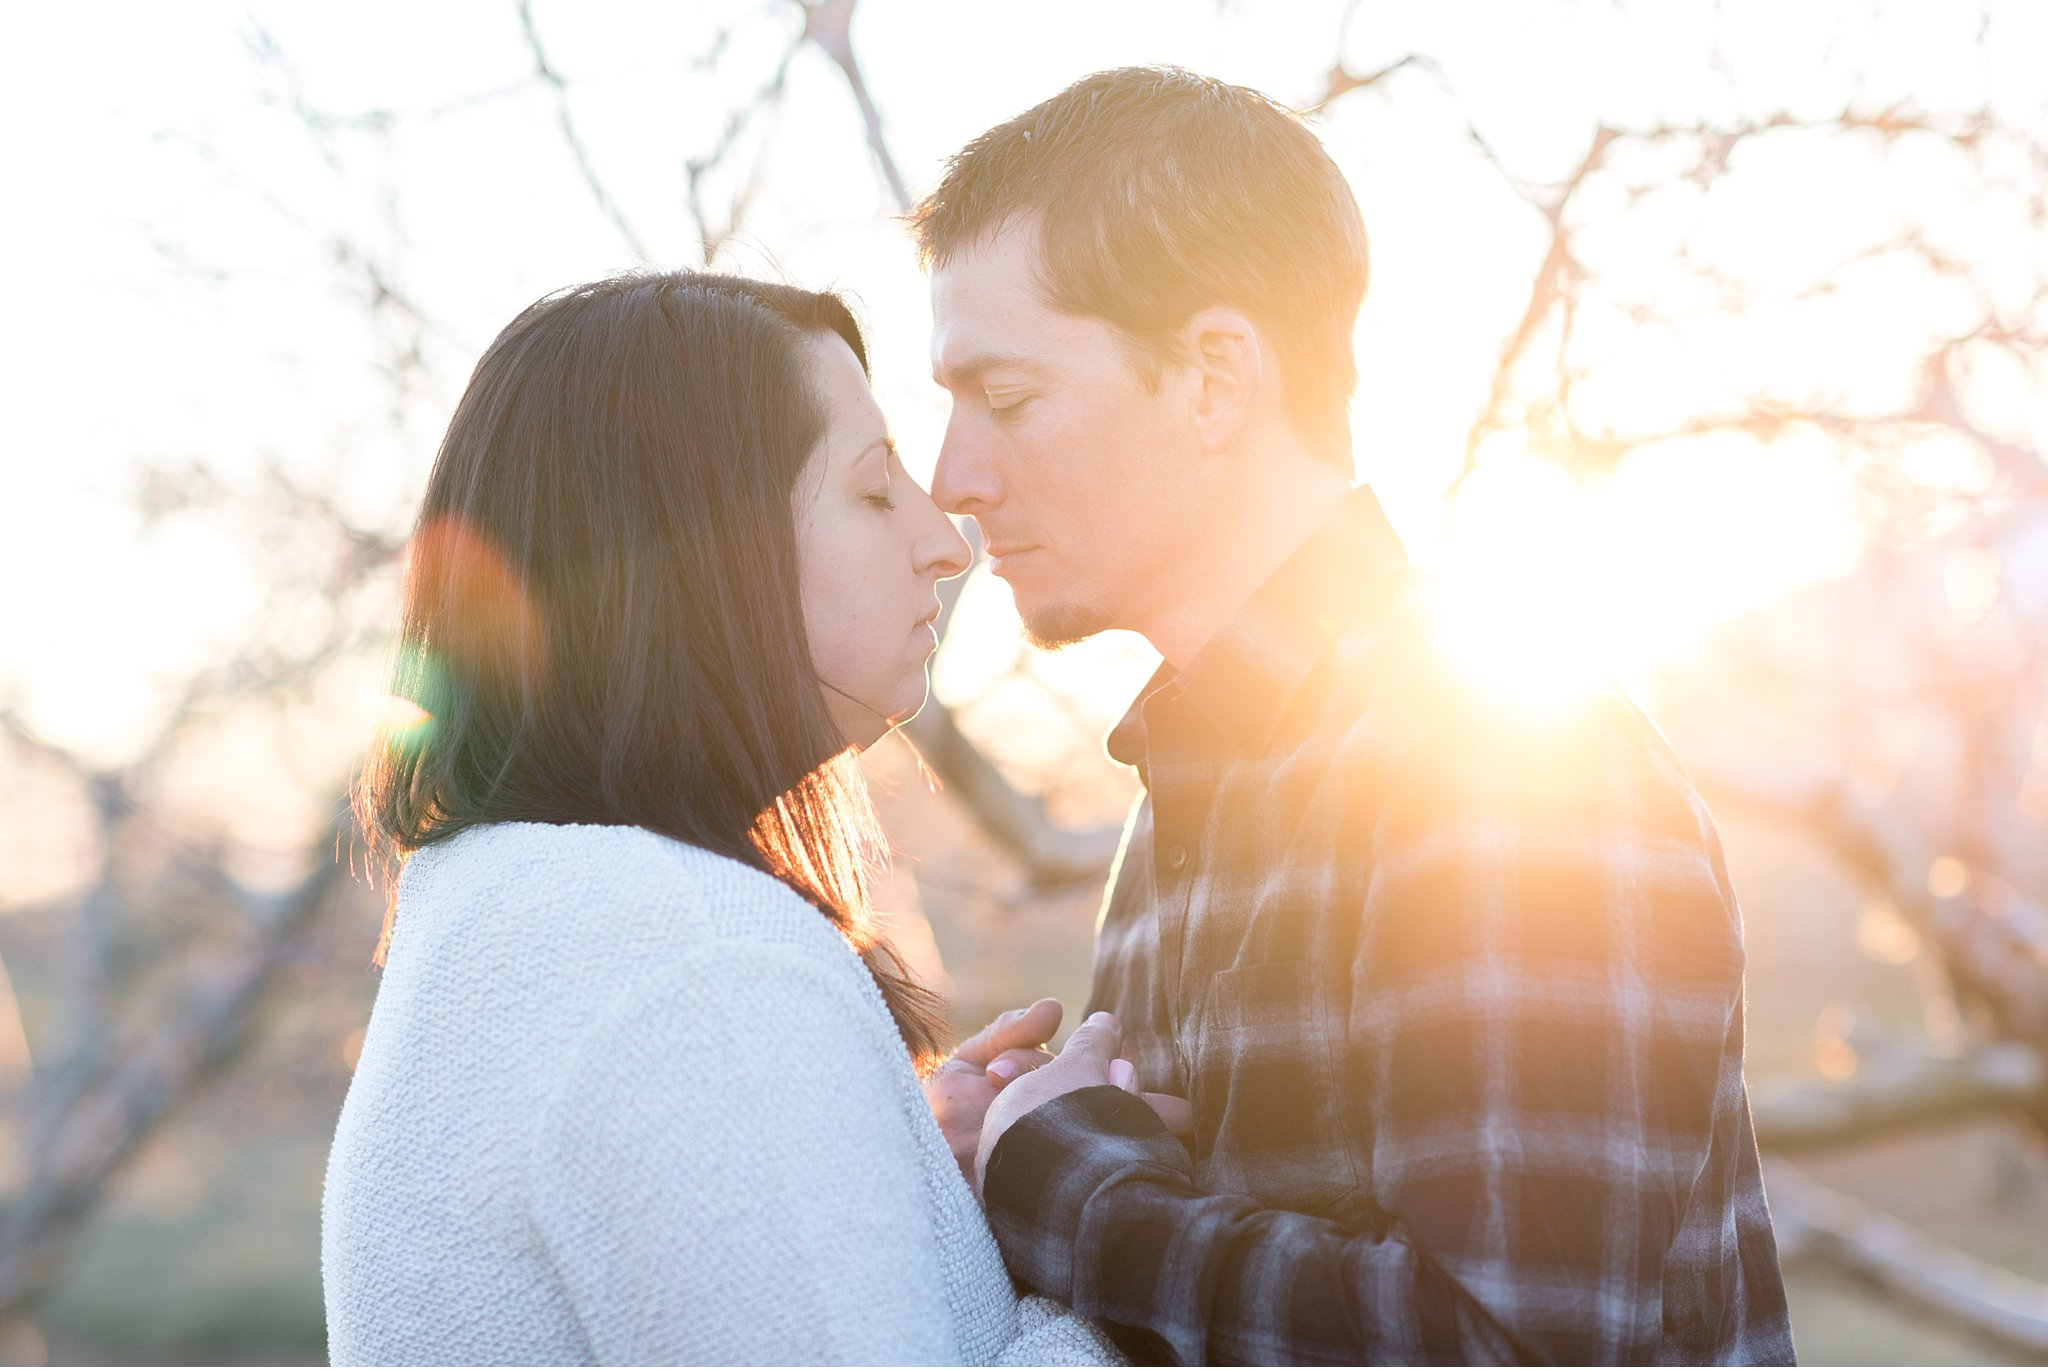 New Providence orchard Lancaster County Wedding and engagement photographer photo_0963.jpg